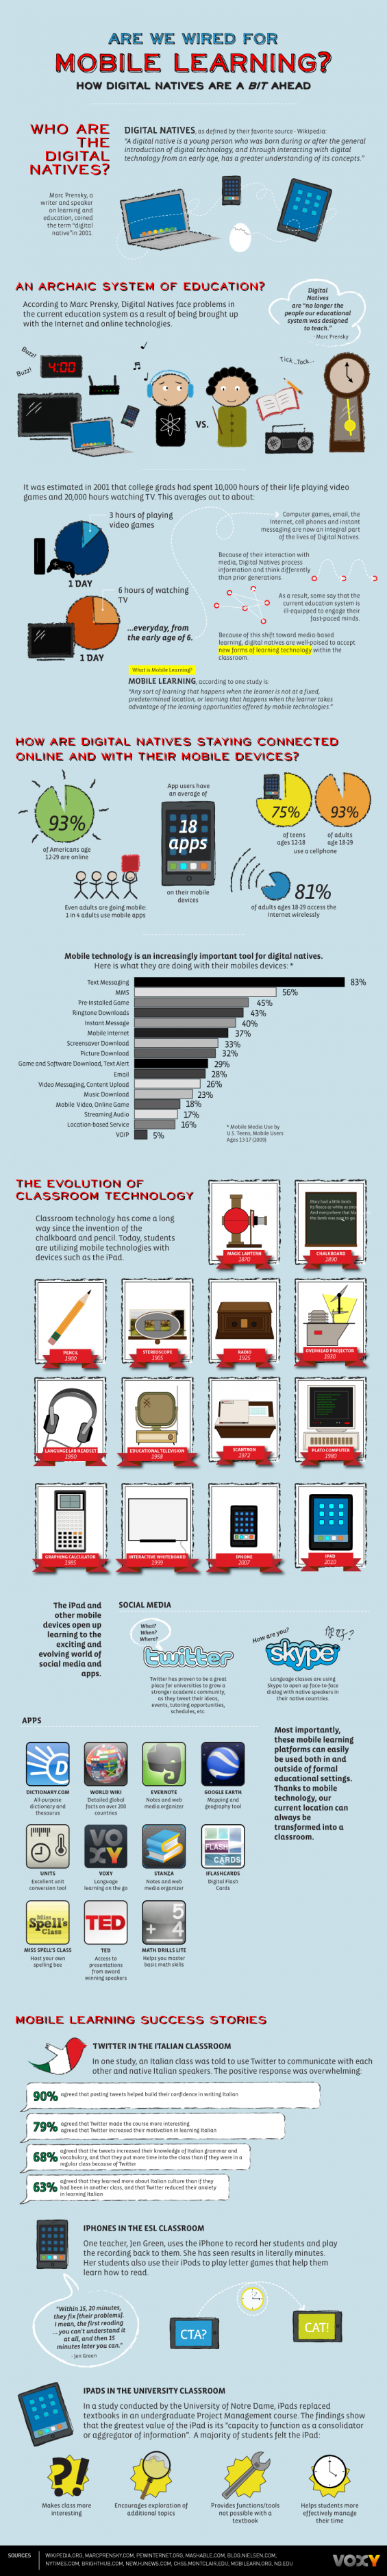 Are We Wired For Mobile Learning? [INFOGRAPHIC]